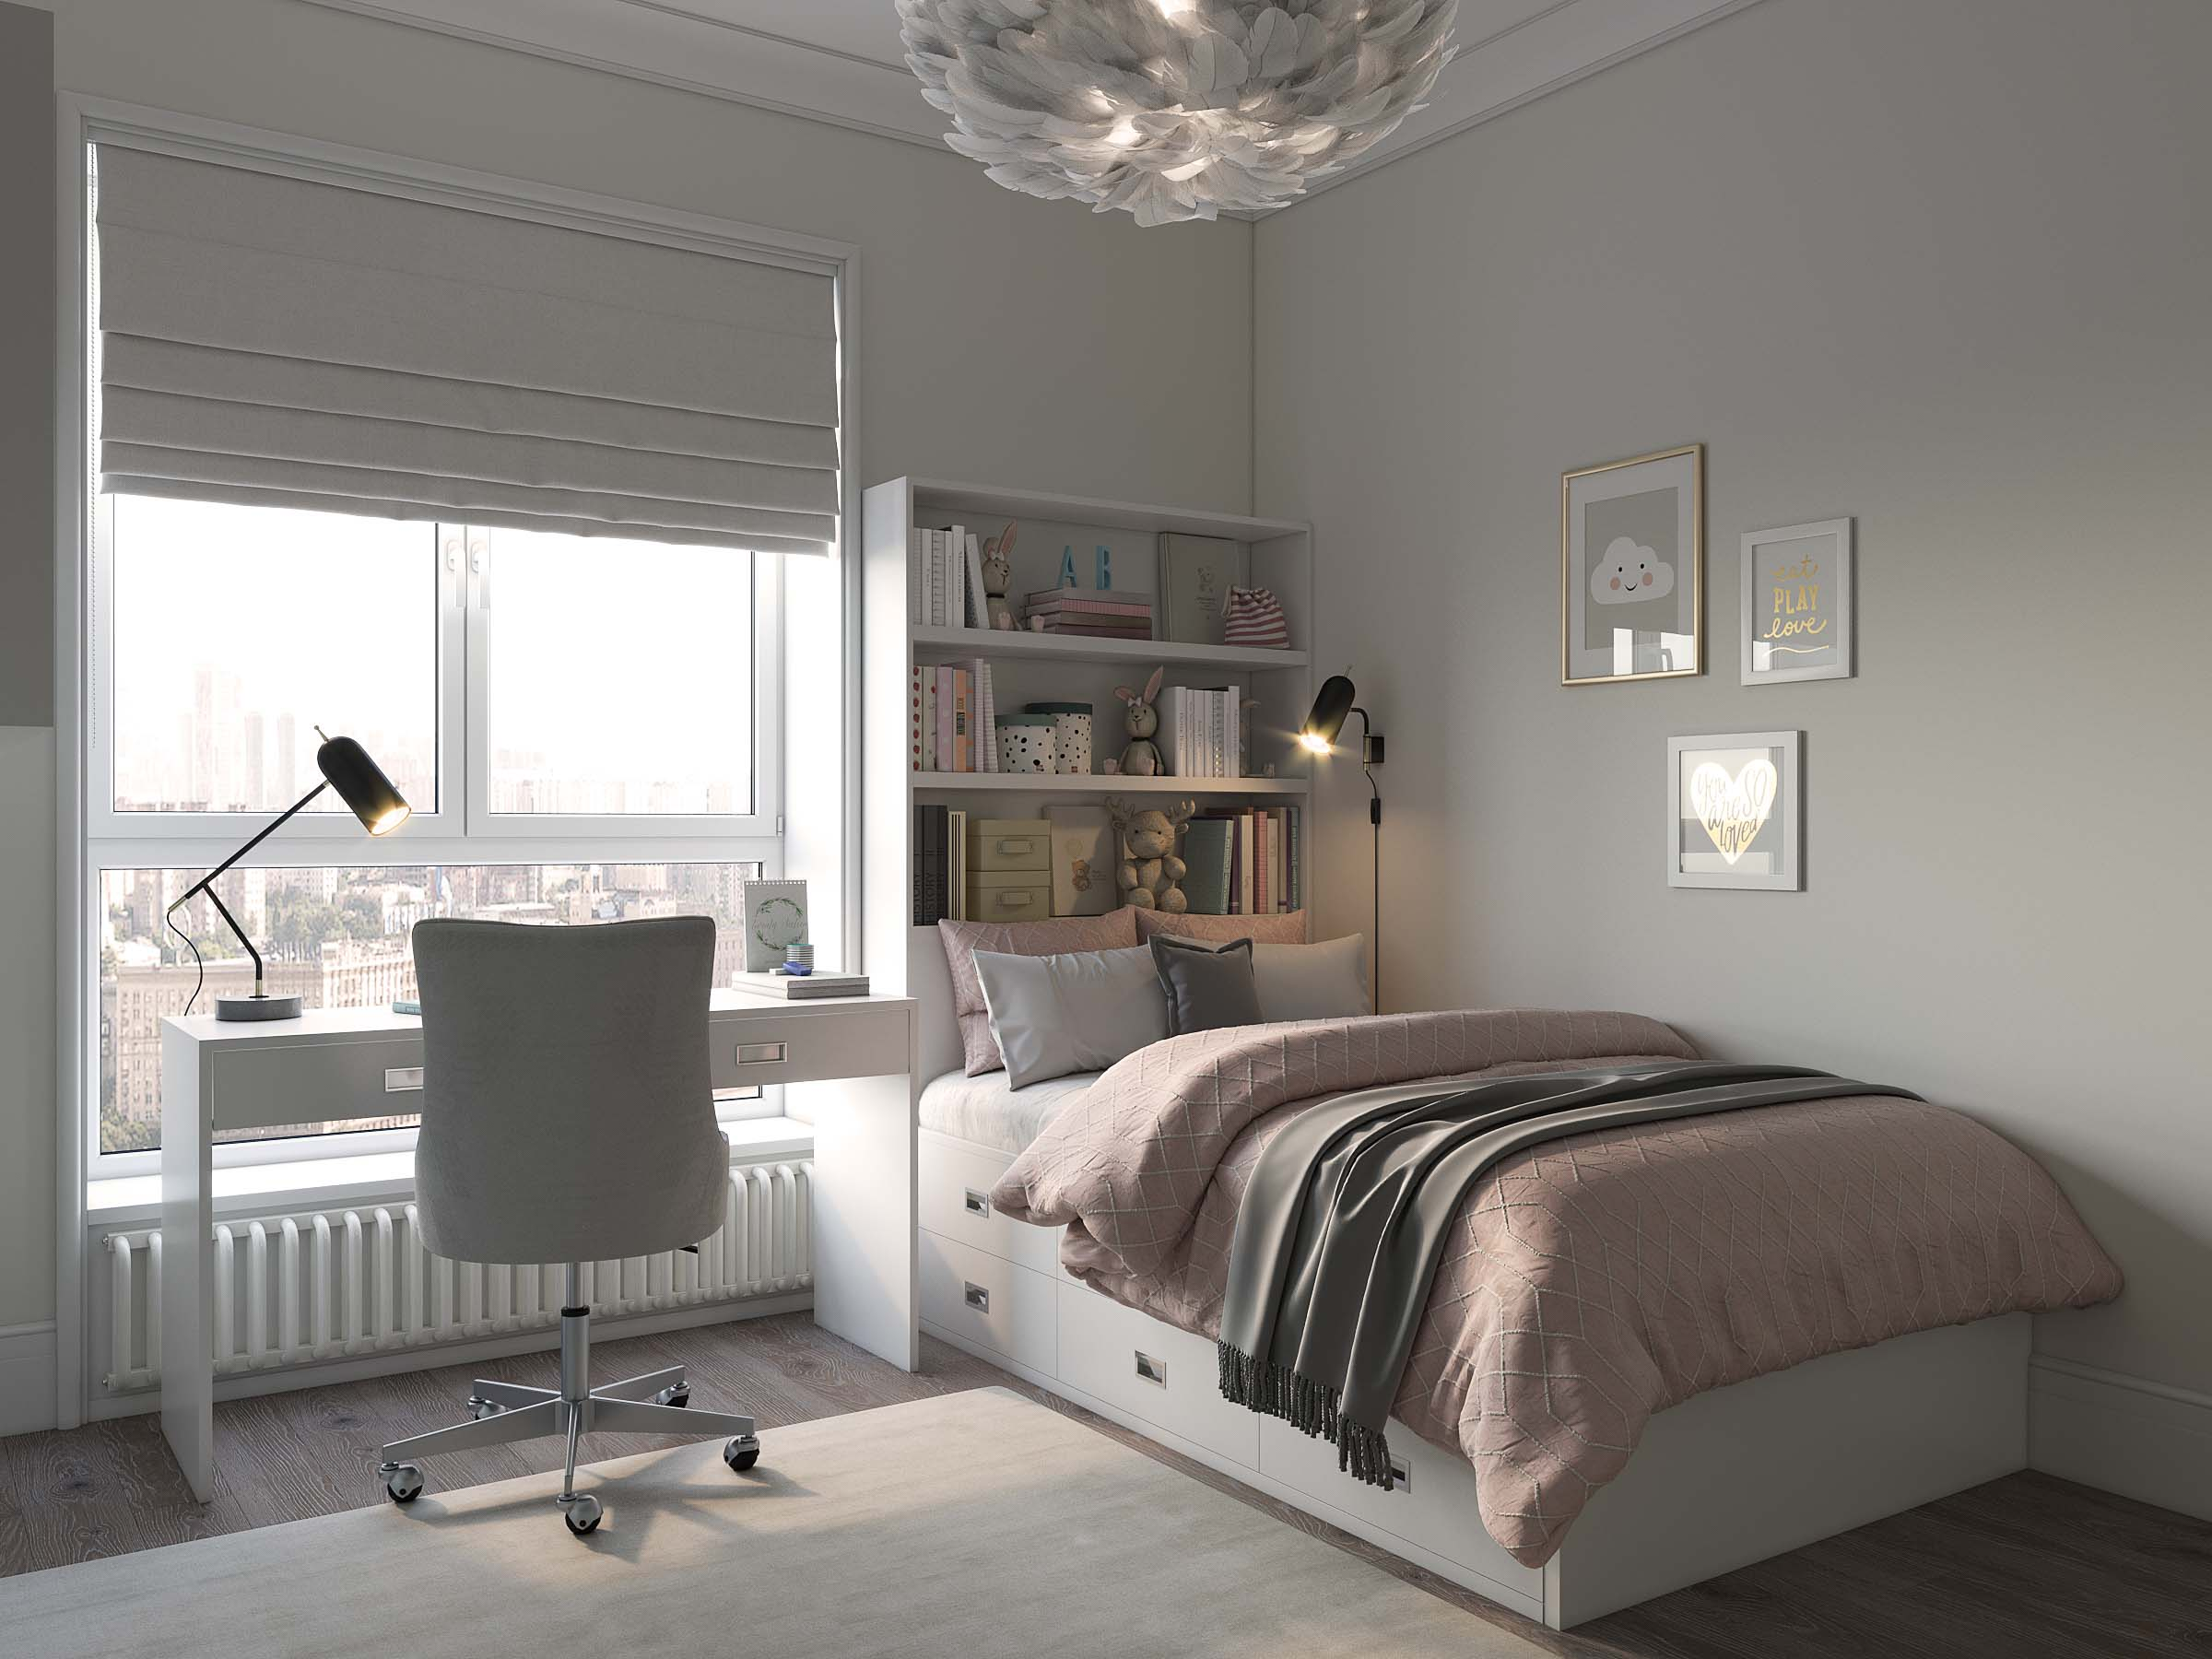 Kids room interior design by Lera Bykova